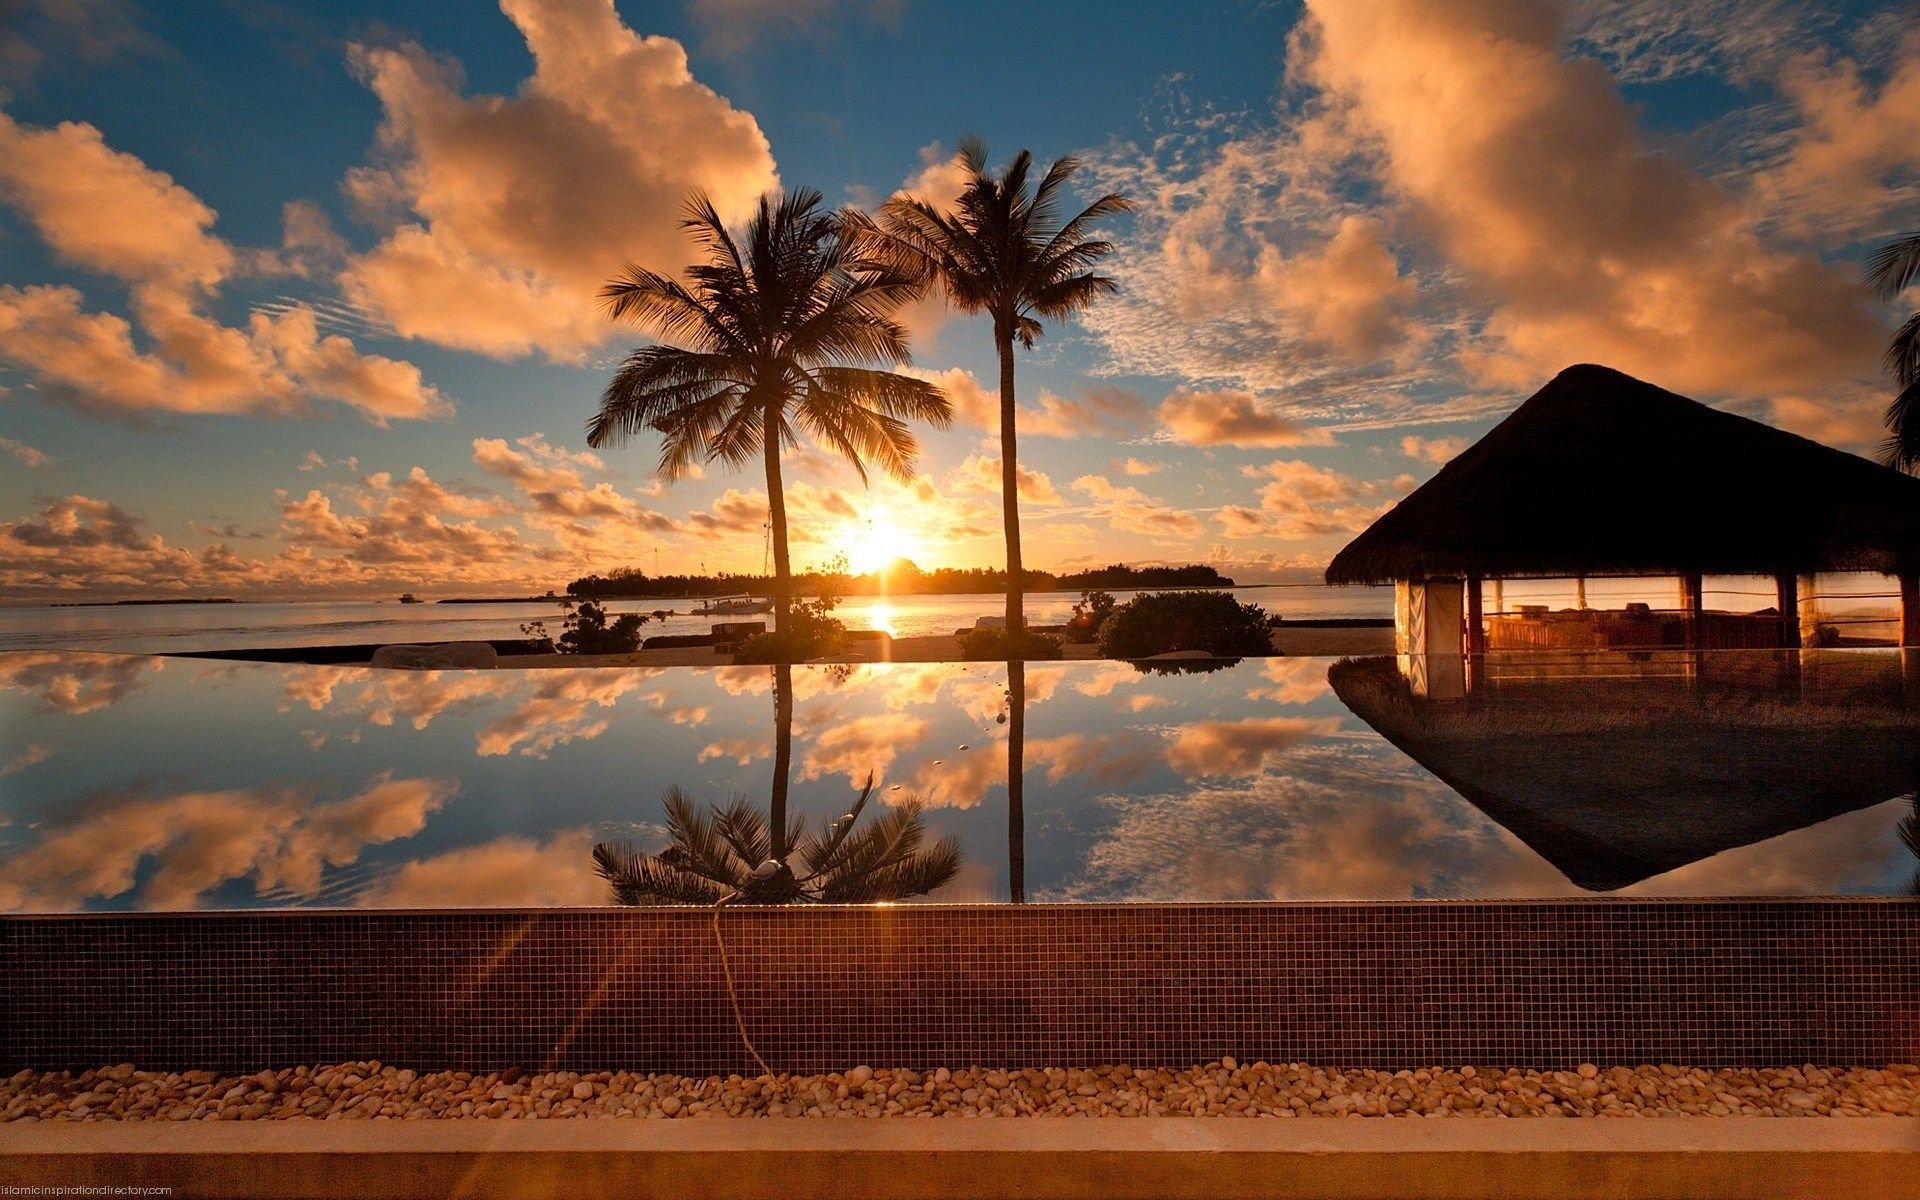 Landscape Tumblr Wallpaper For Android Landscape Wallpaper Sunset Wallpaper Palm Tree Sunset